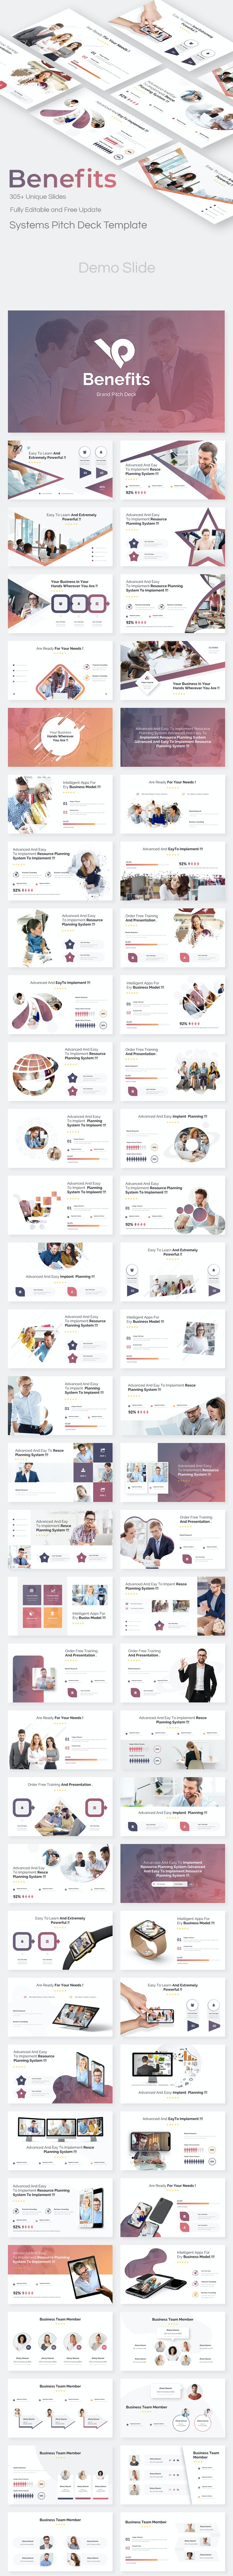 Brand Benefits Pitch Deck Powerpoint Template - Business PowerPoint Templates